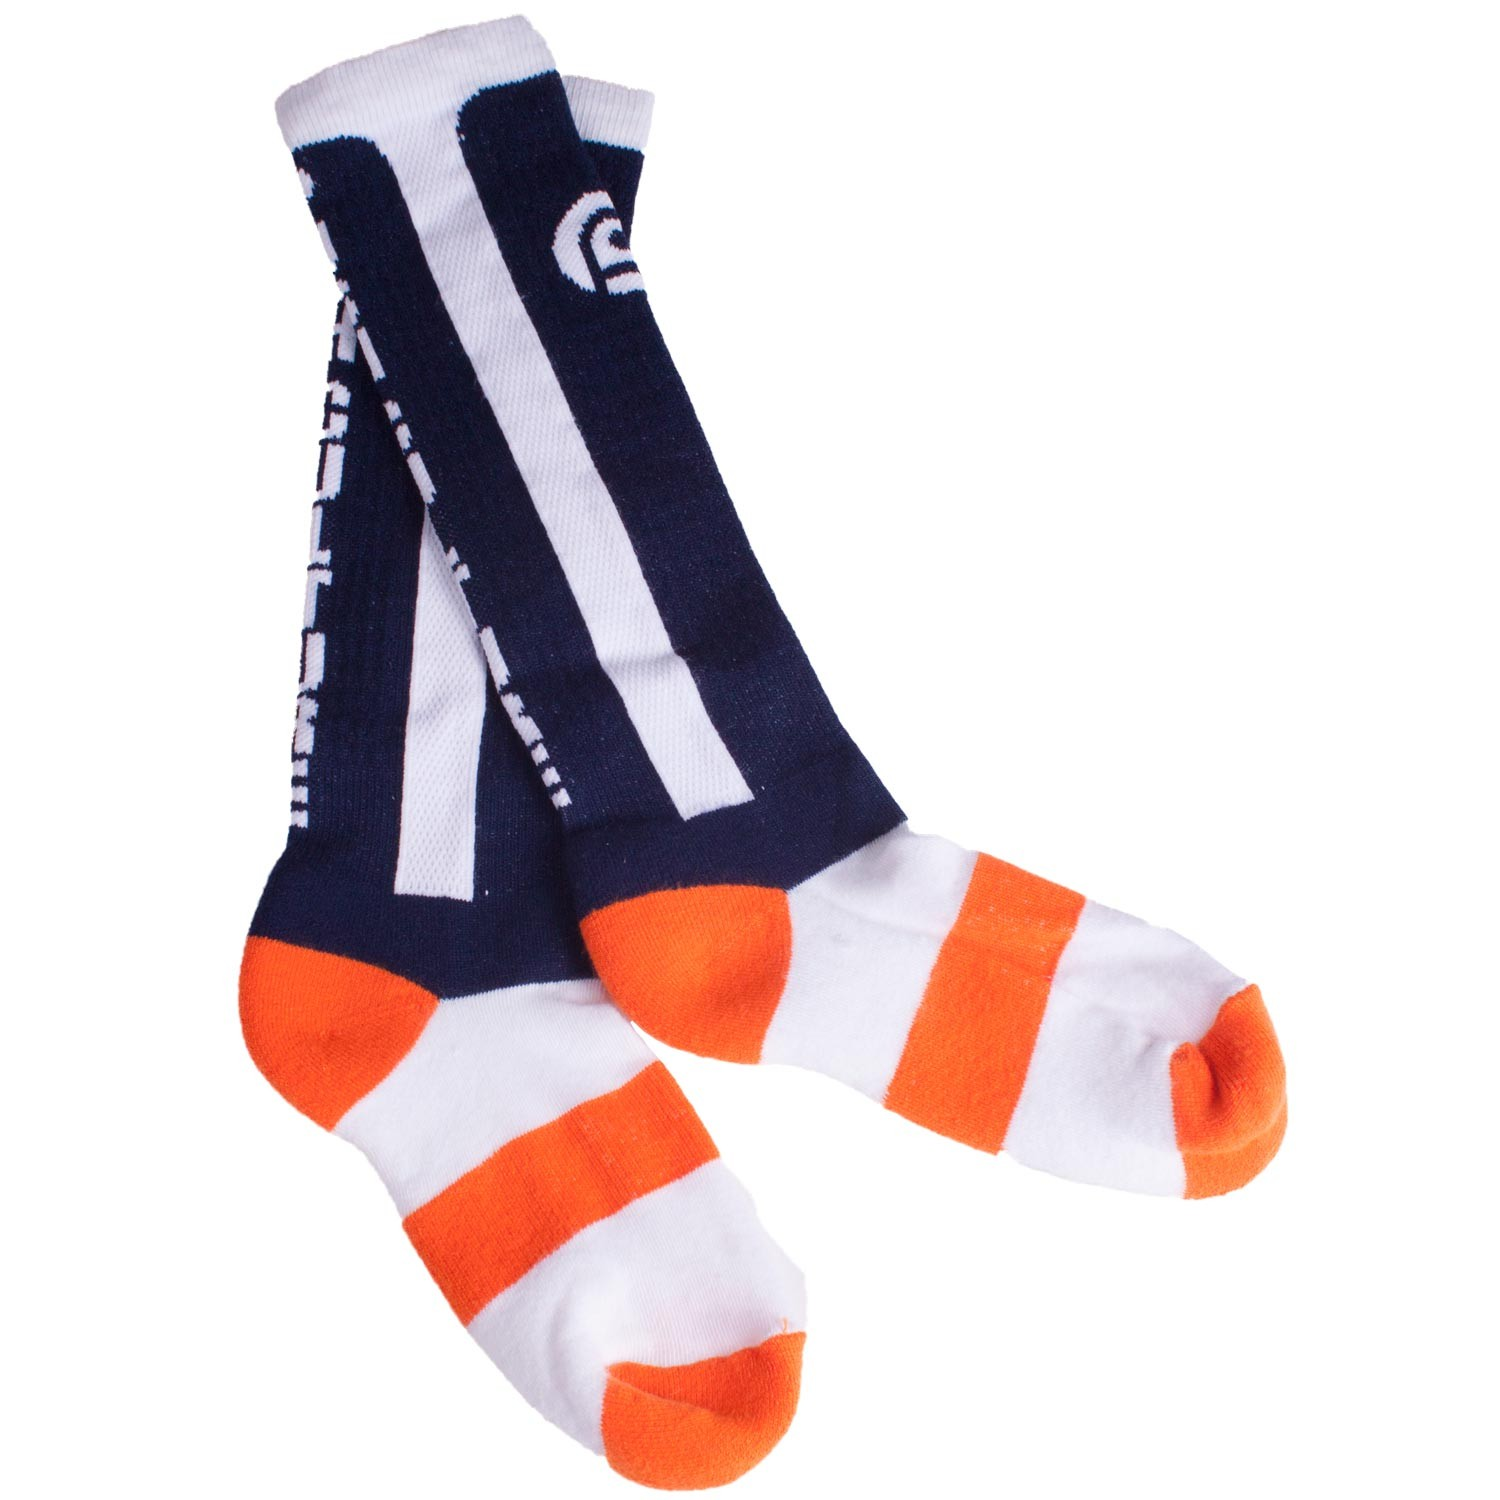 Push Culture Navy Socks - Navy Blue